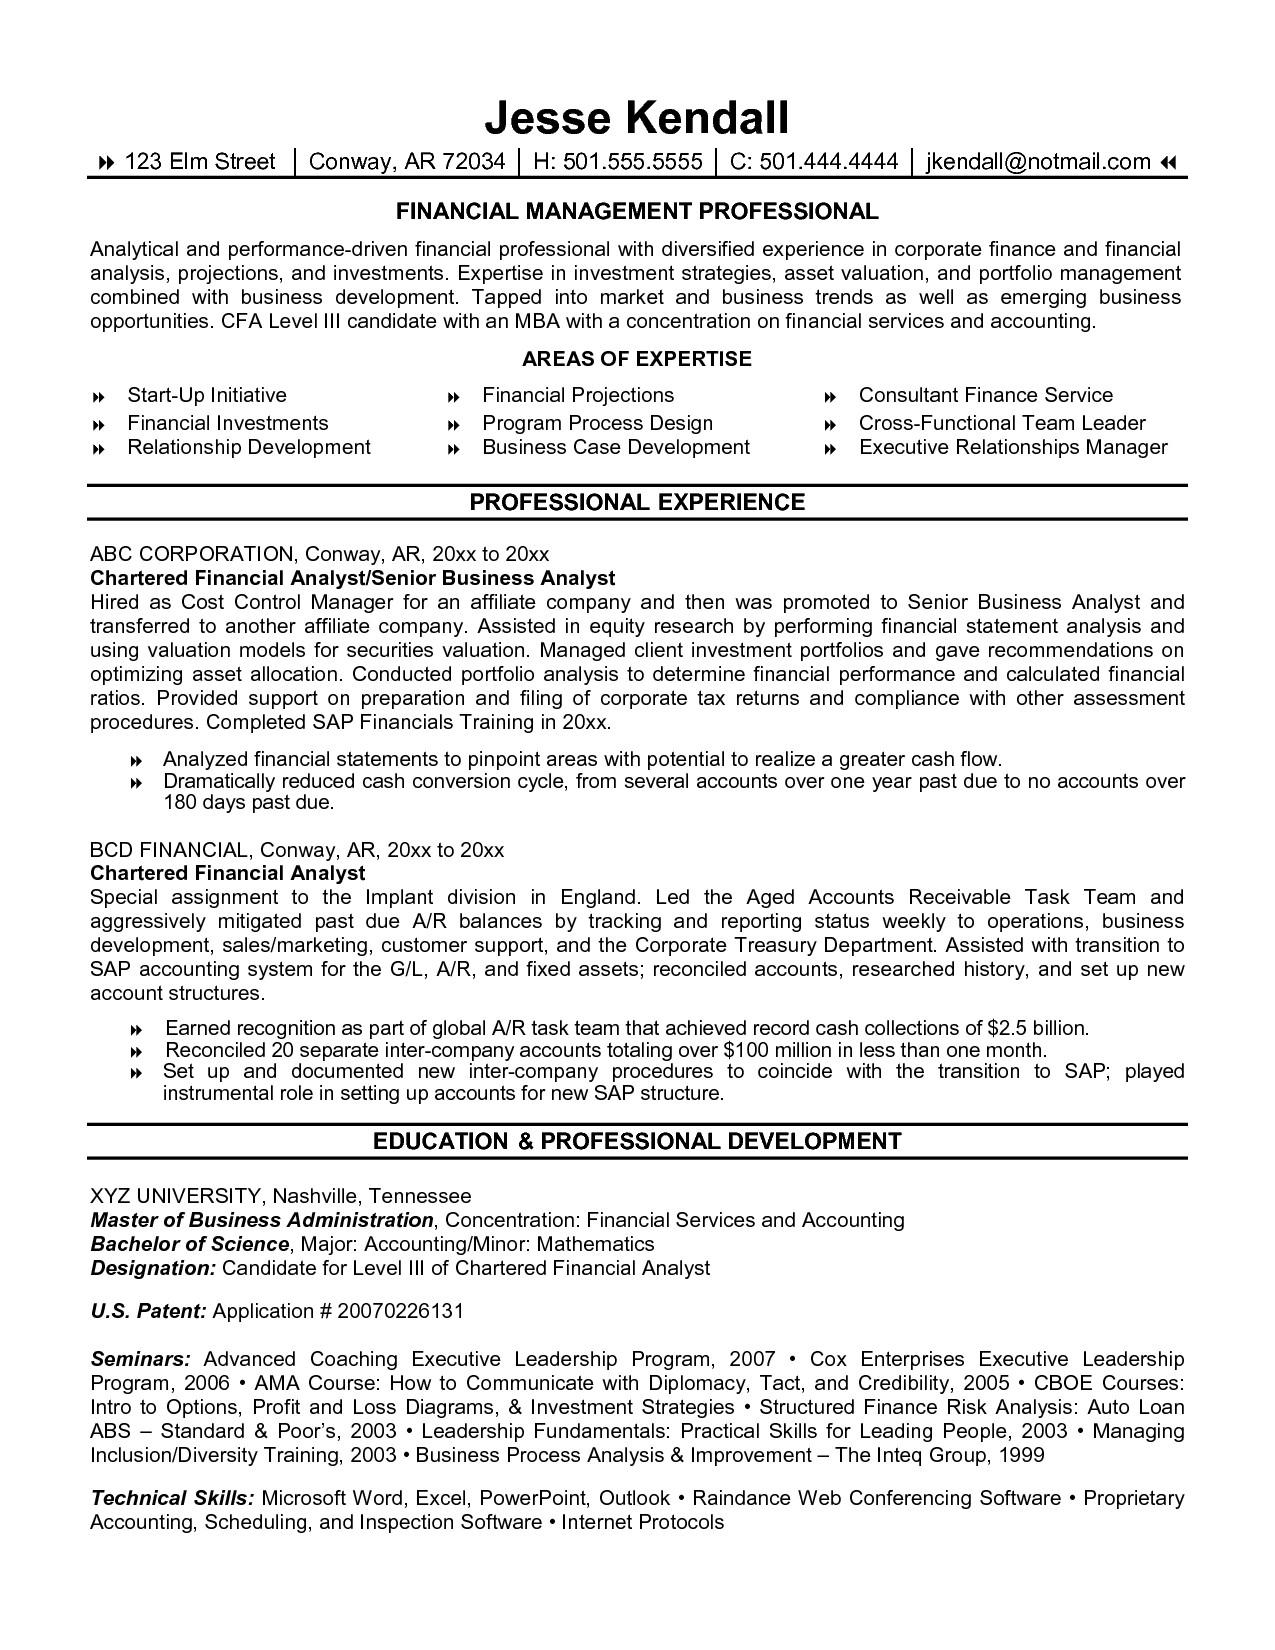 resume financial analyst best format amazing finance examples ...